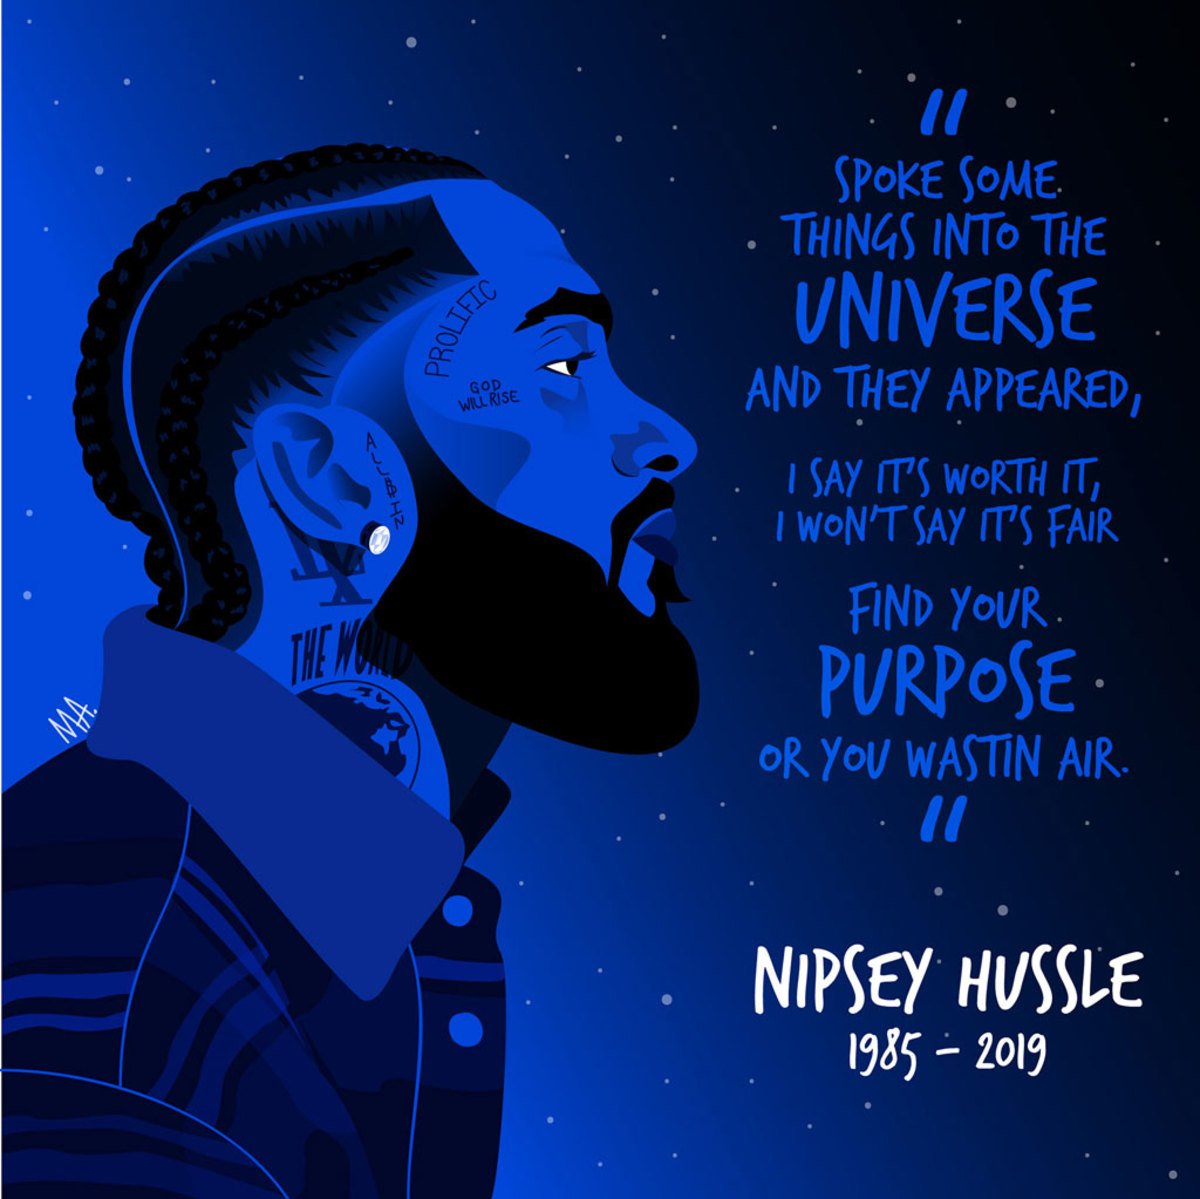 Nipsey Hussle art by ASHBURNE ARTS